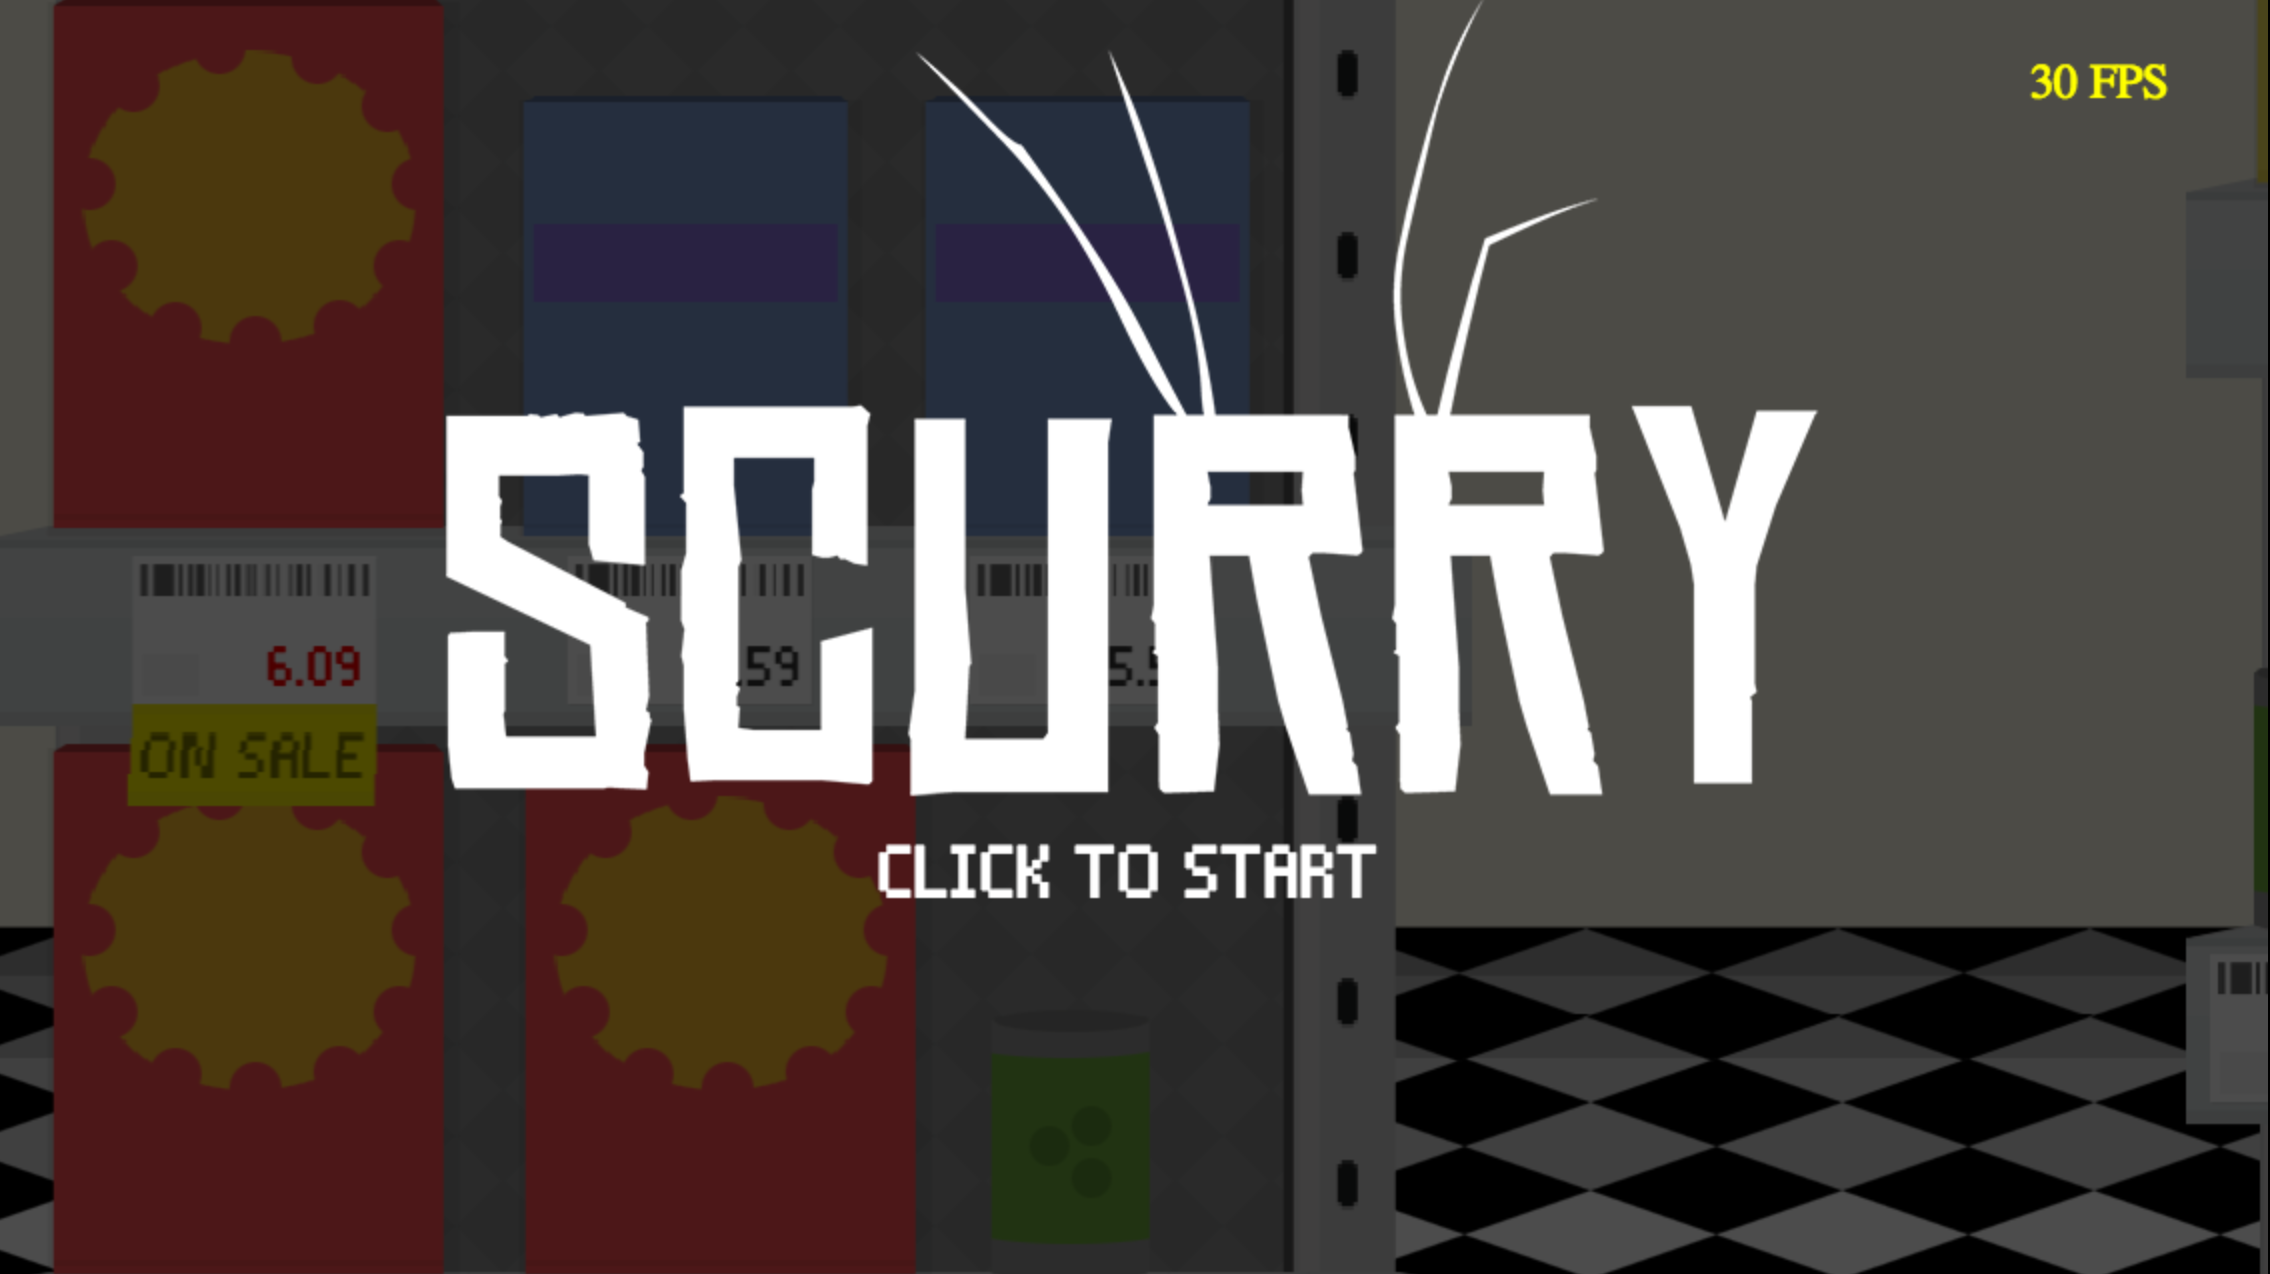 Scurry Title screen